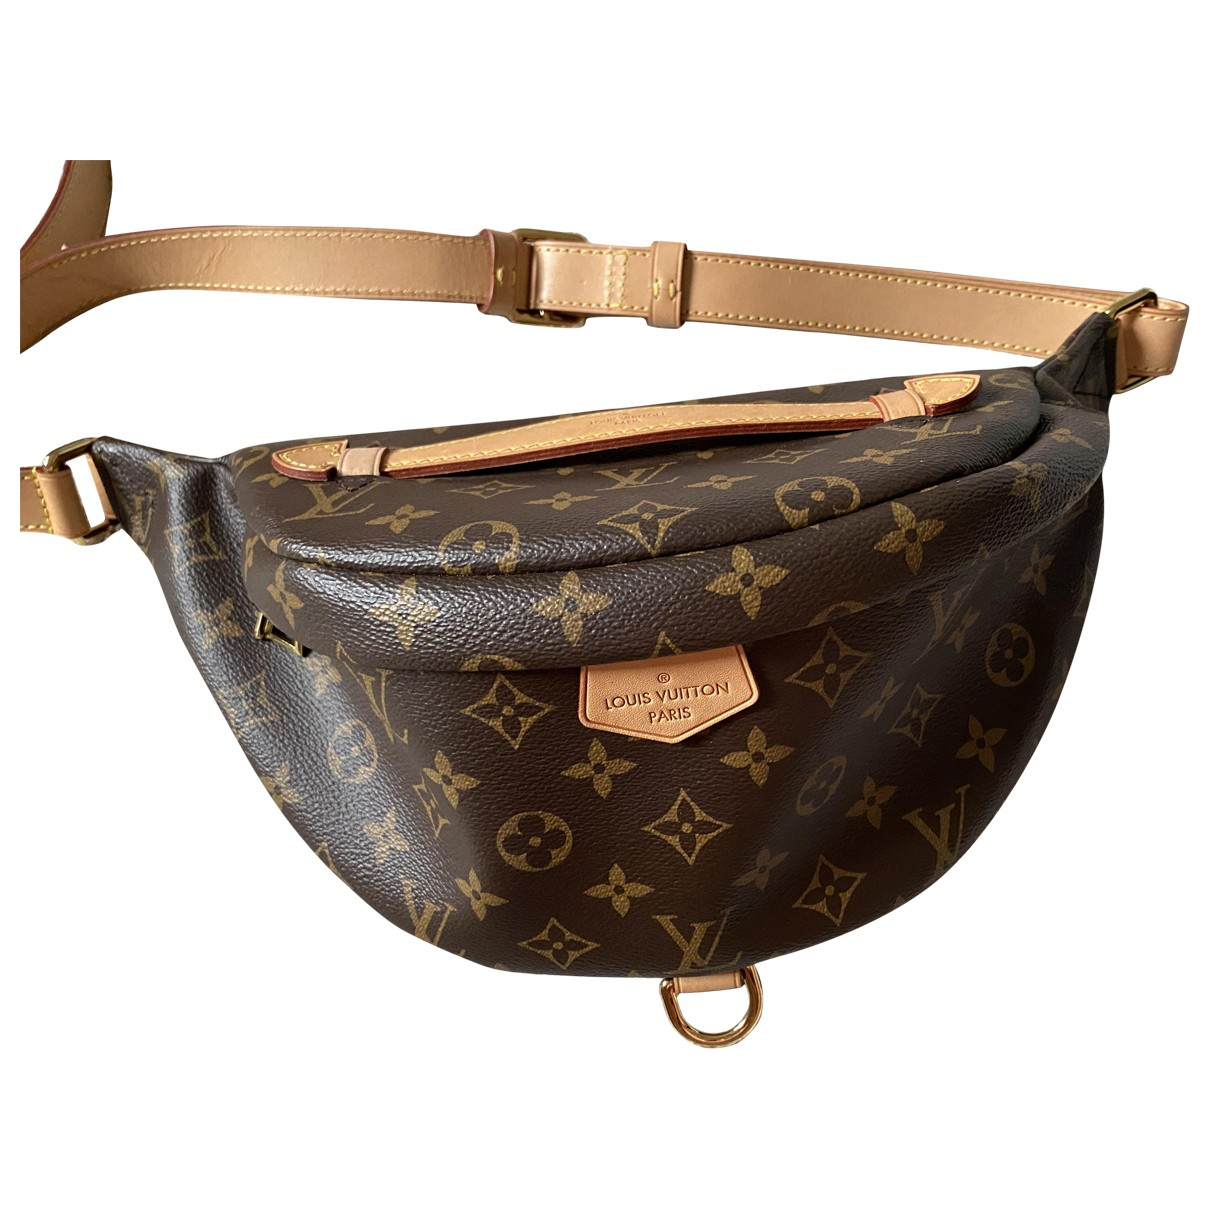 Pochette Bum Bag / Sac Ceinture de Lona Louis Vuitton